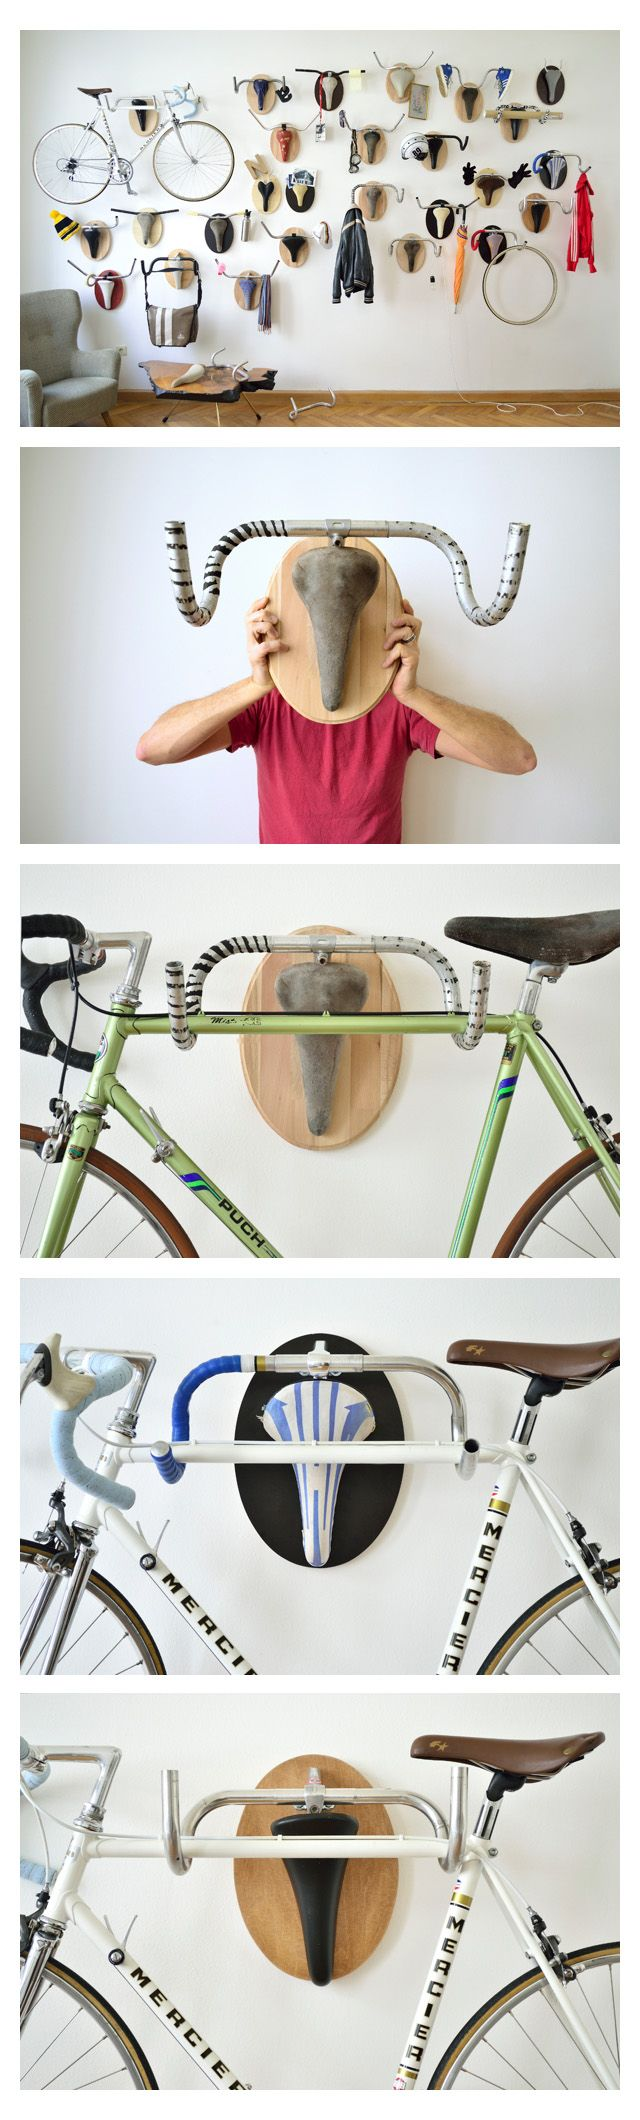 The bike upcycling project